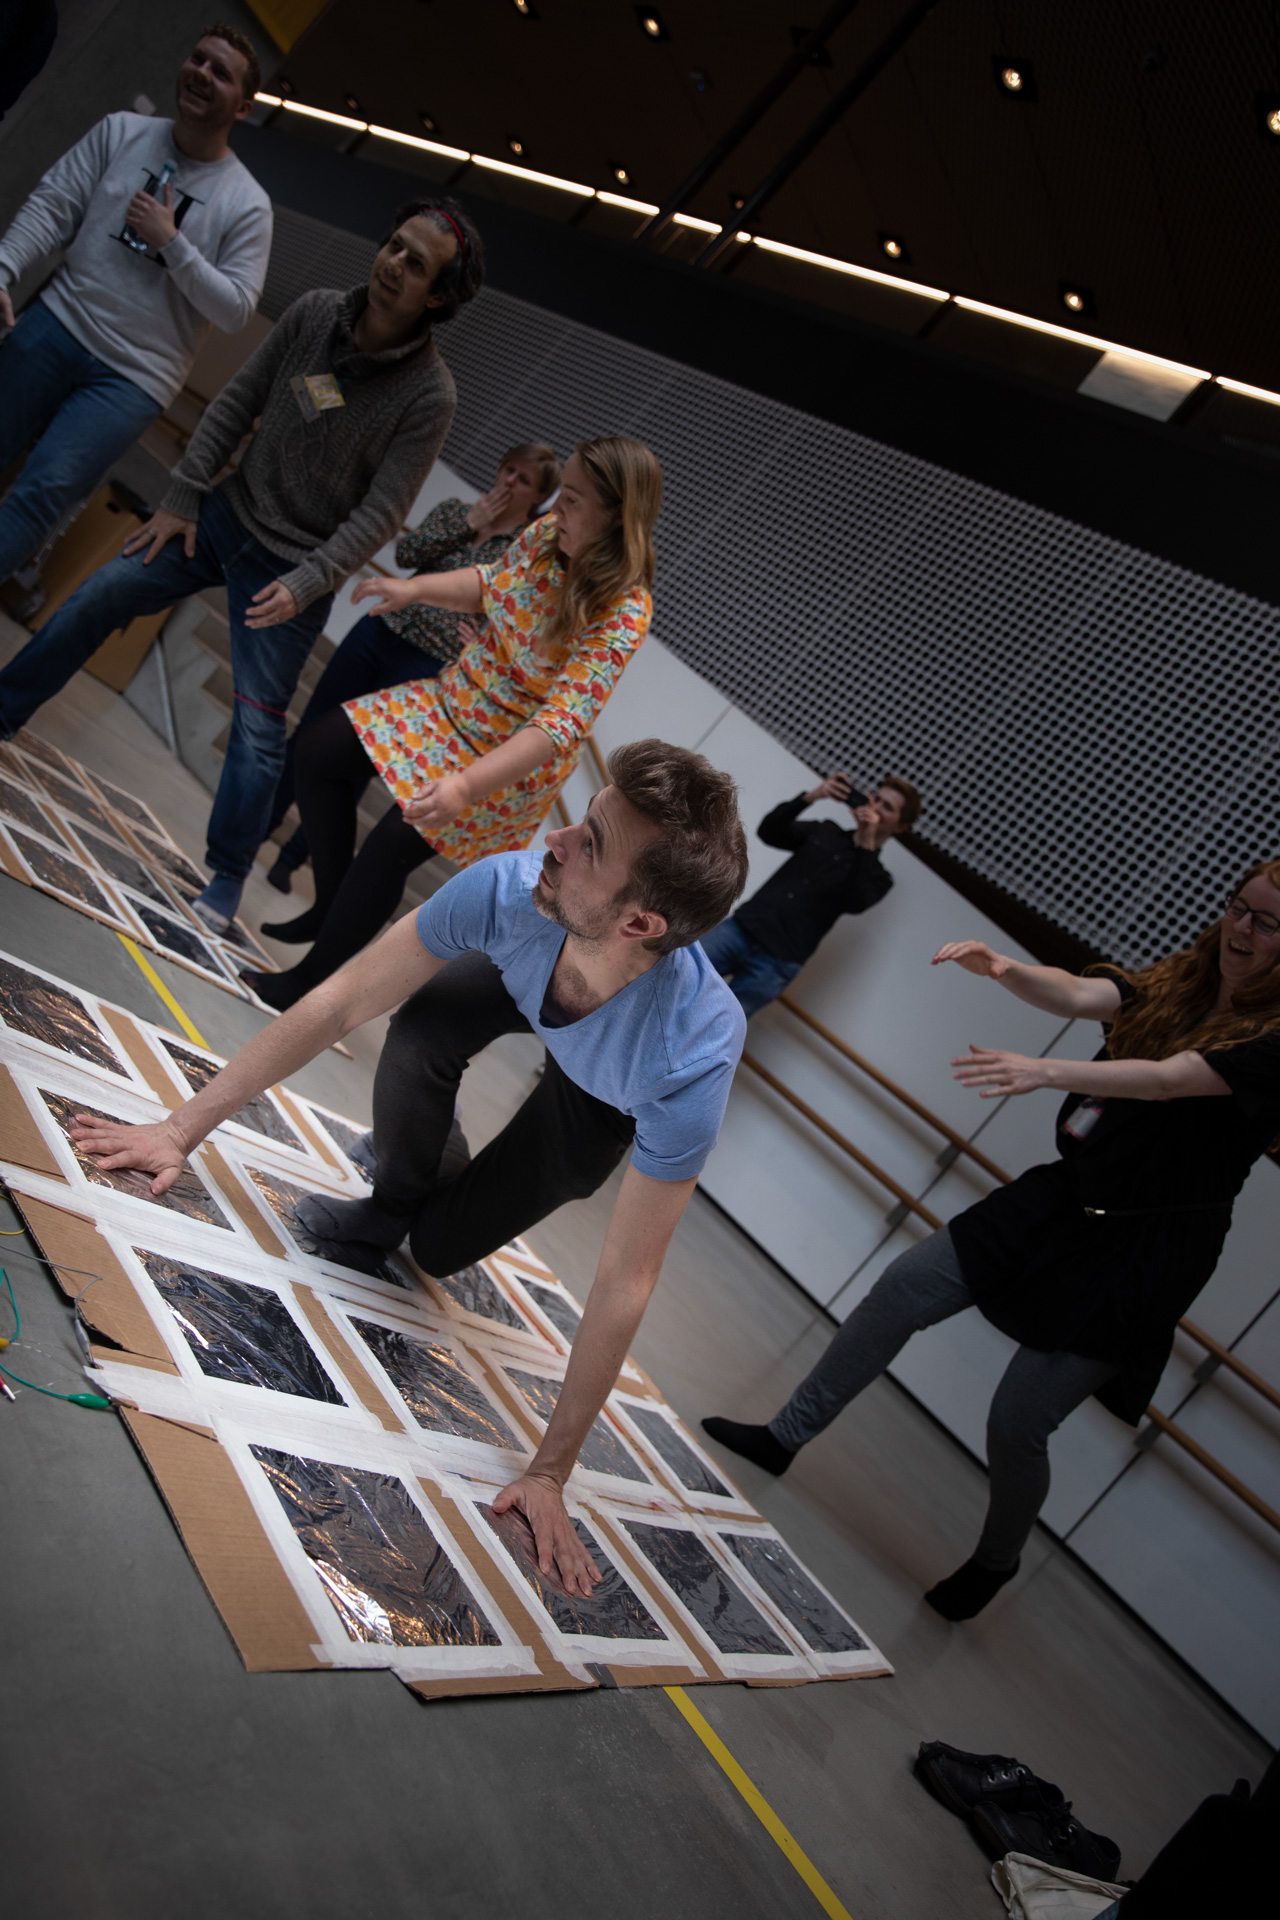 Picture of people playing the games at Dokk1 in Aarhus